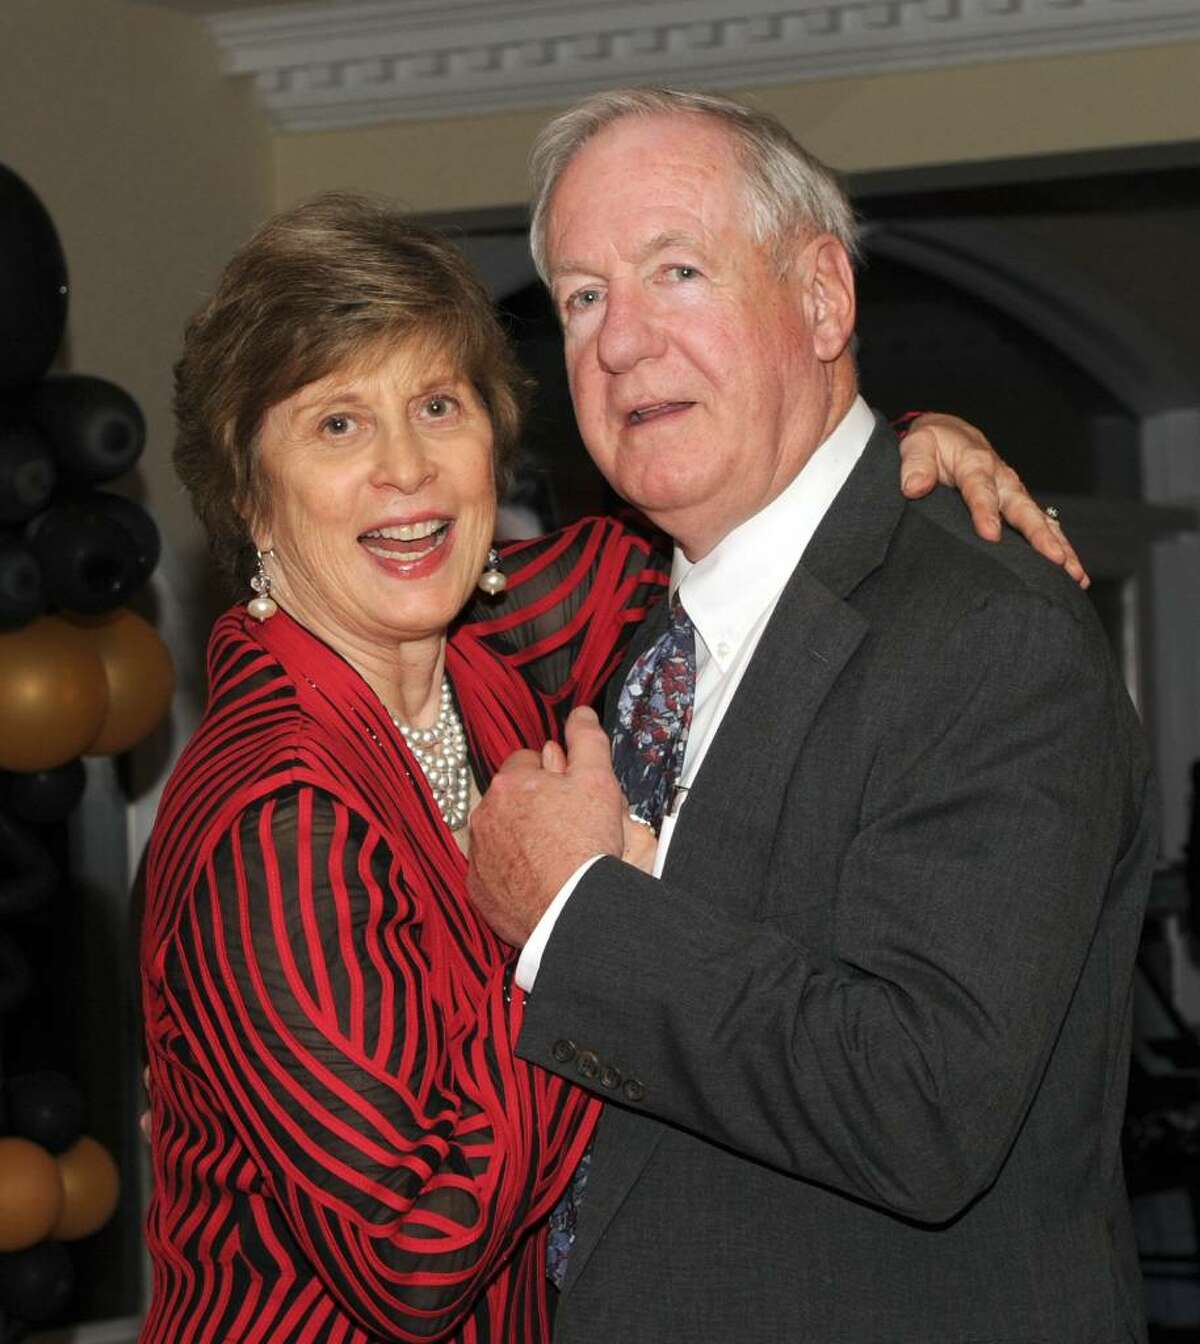 Former Brookfield First Selectman Jerry Murphy and his wife Susan, dance together at the Oscar Night Gala, Saturday, March 20, 2010.